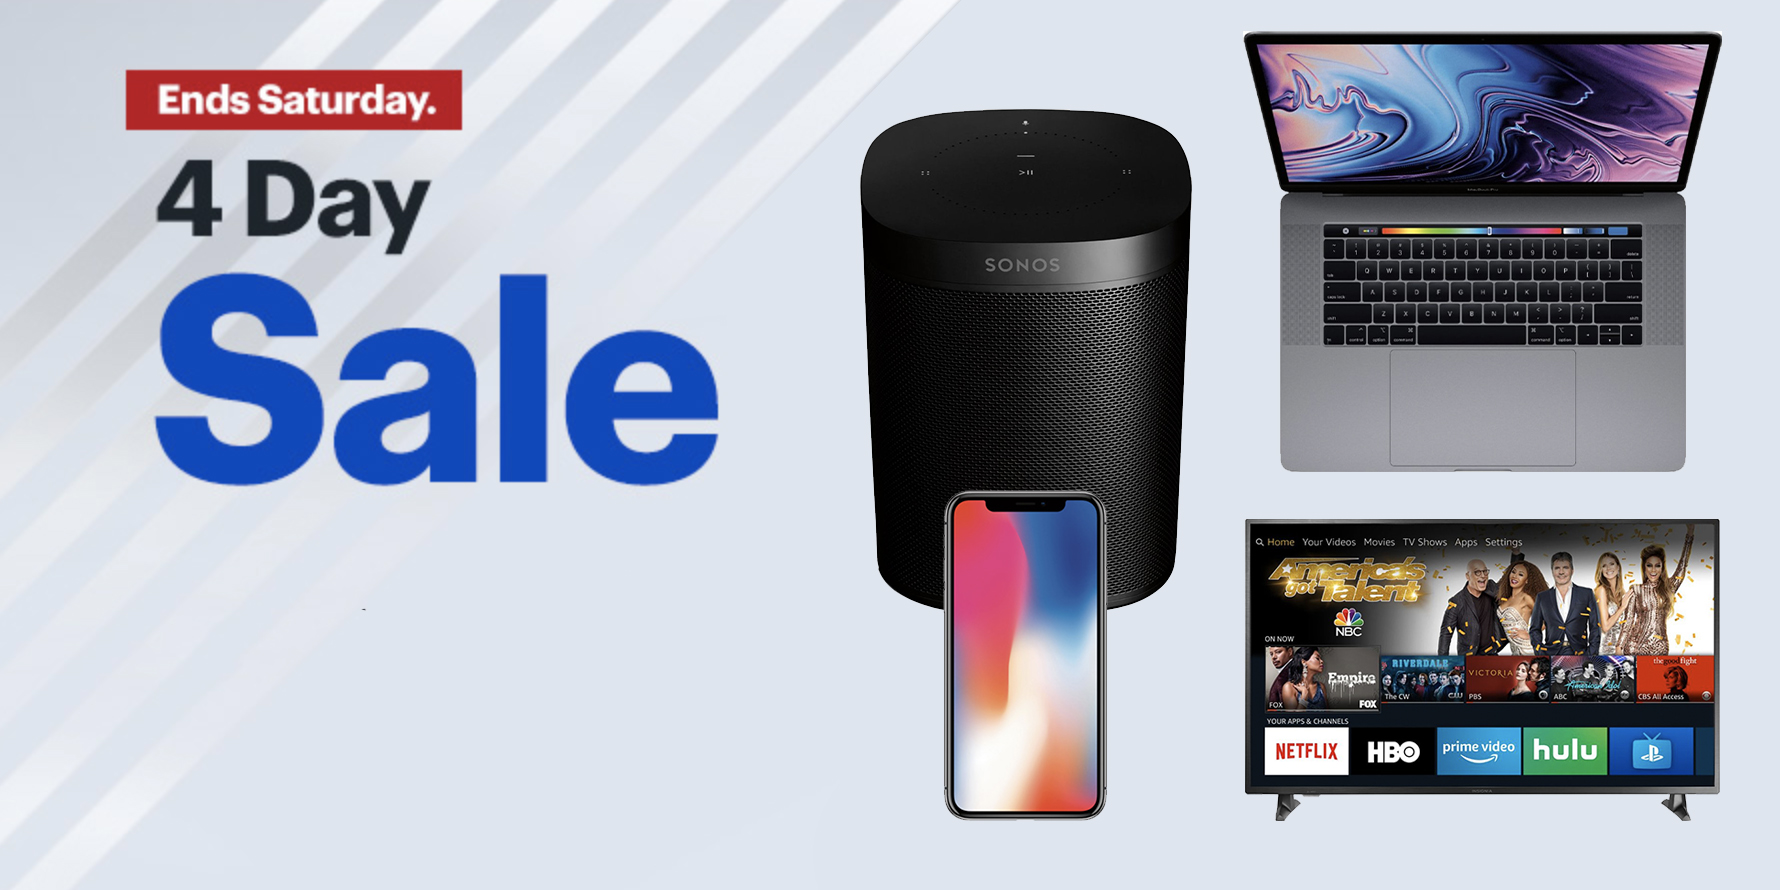 Best Buy's new four day sale is live w/ $400 off MacBook Pro, Sonos, iPhone X, TVs, more